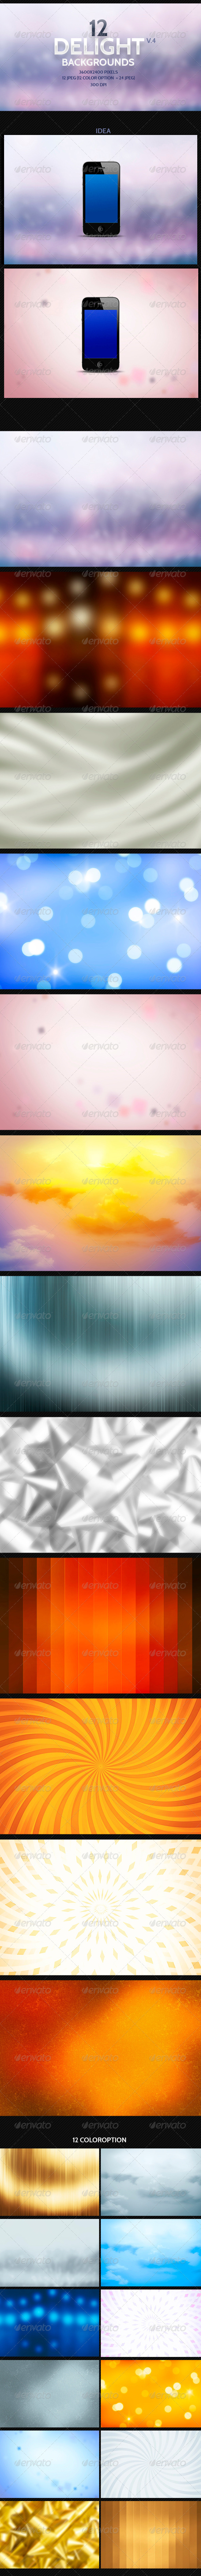 GraphicRiver Delight Backgrounds v4 8781733